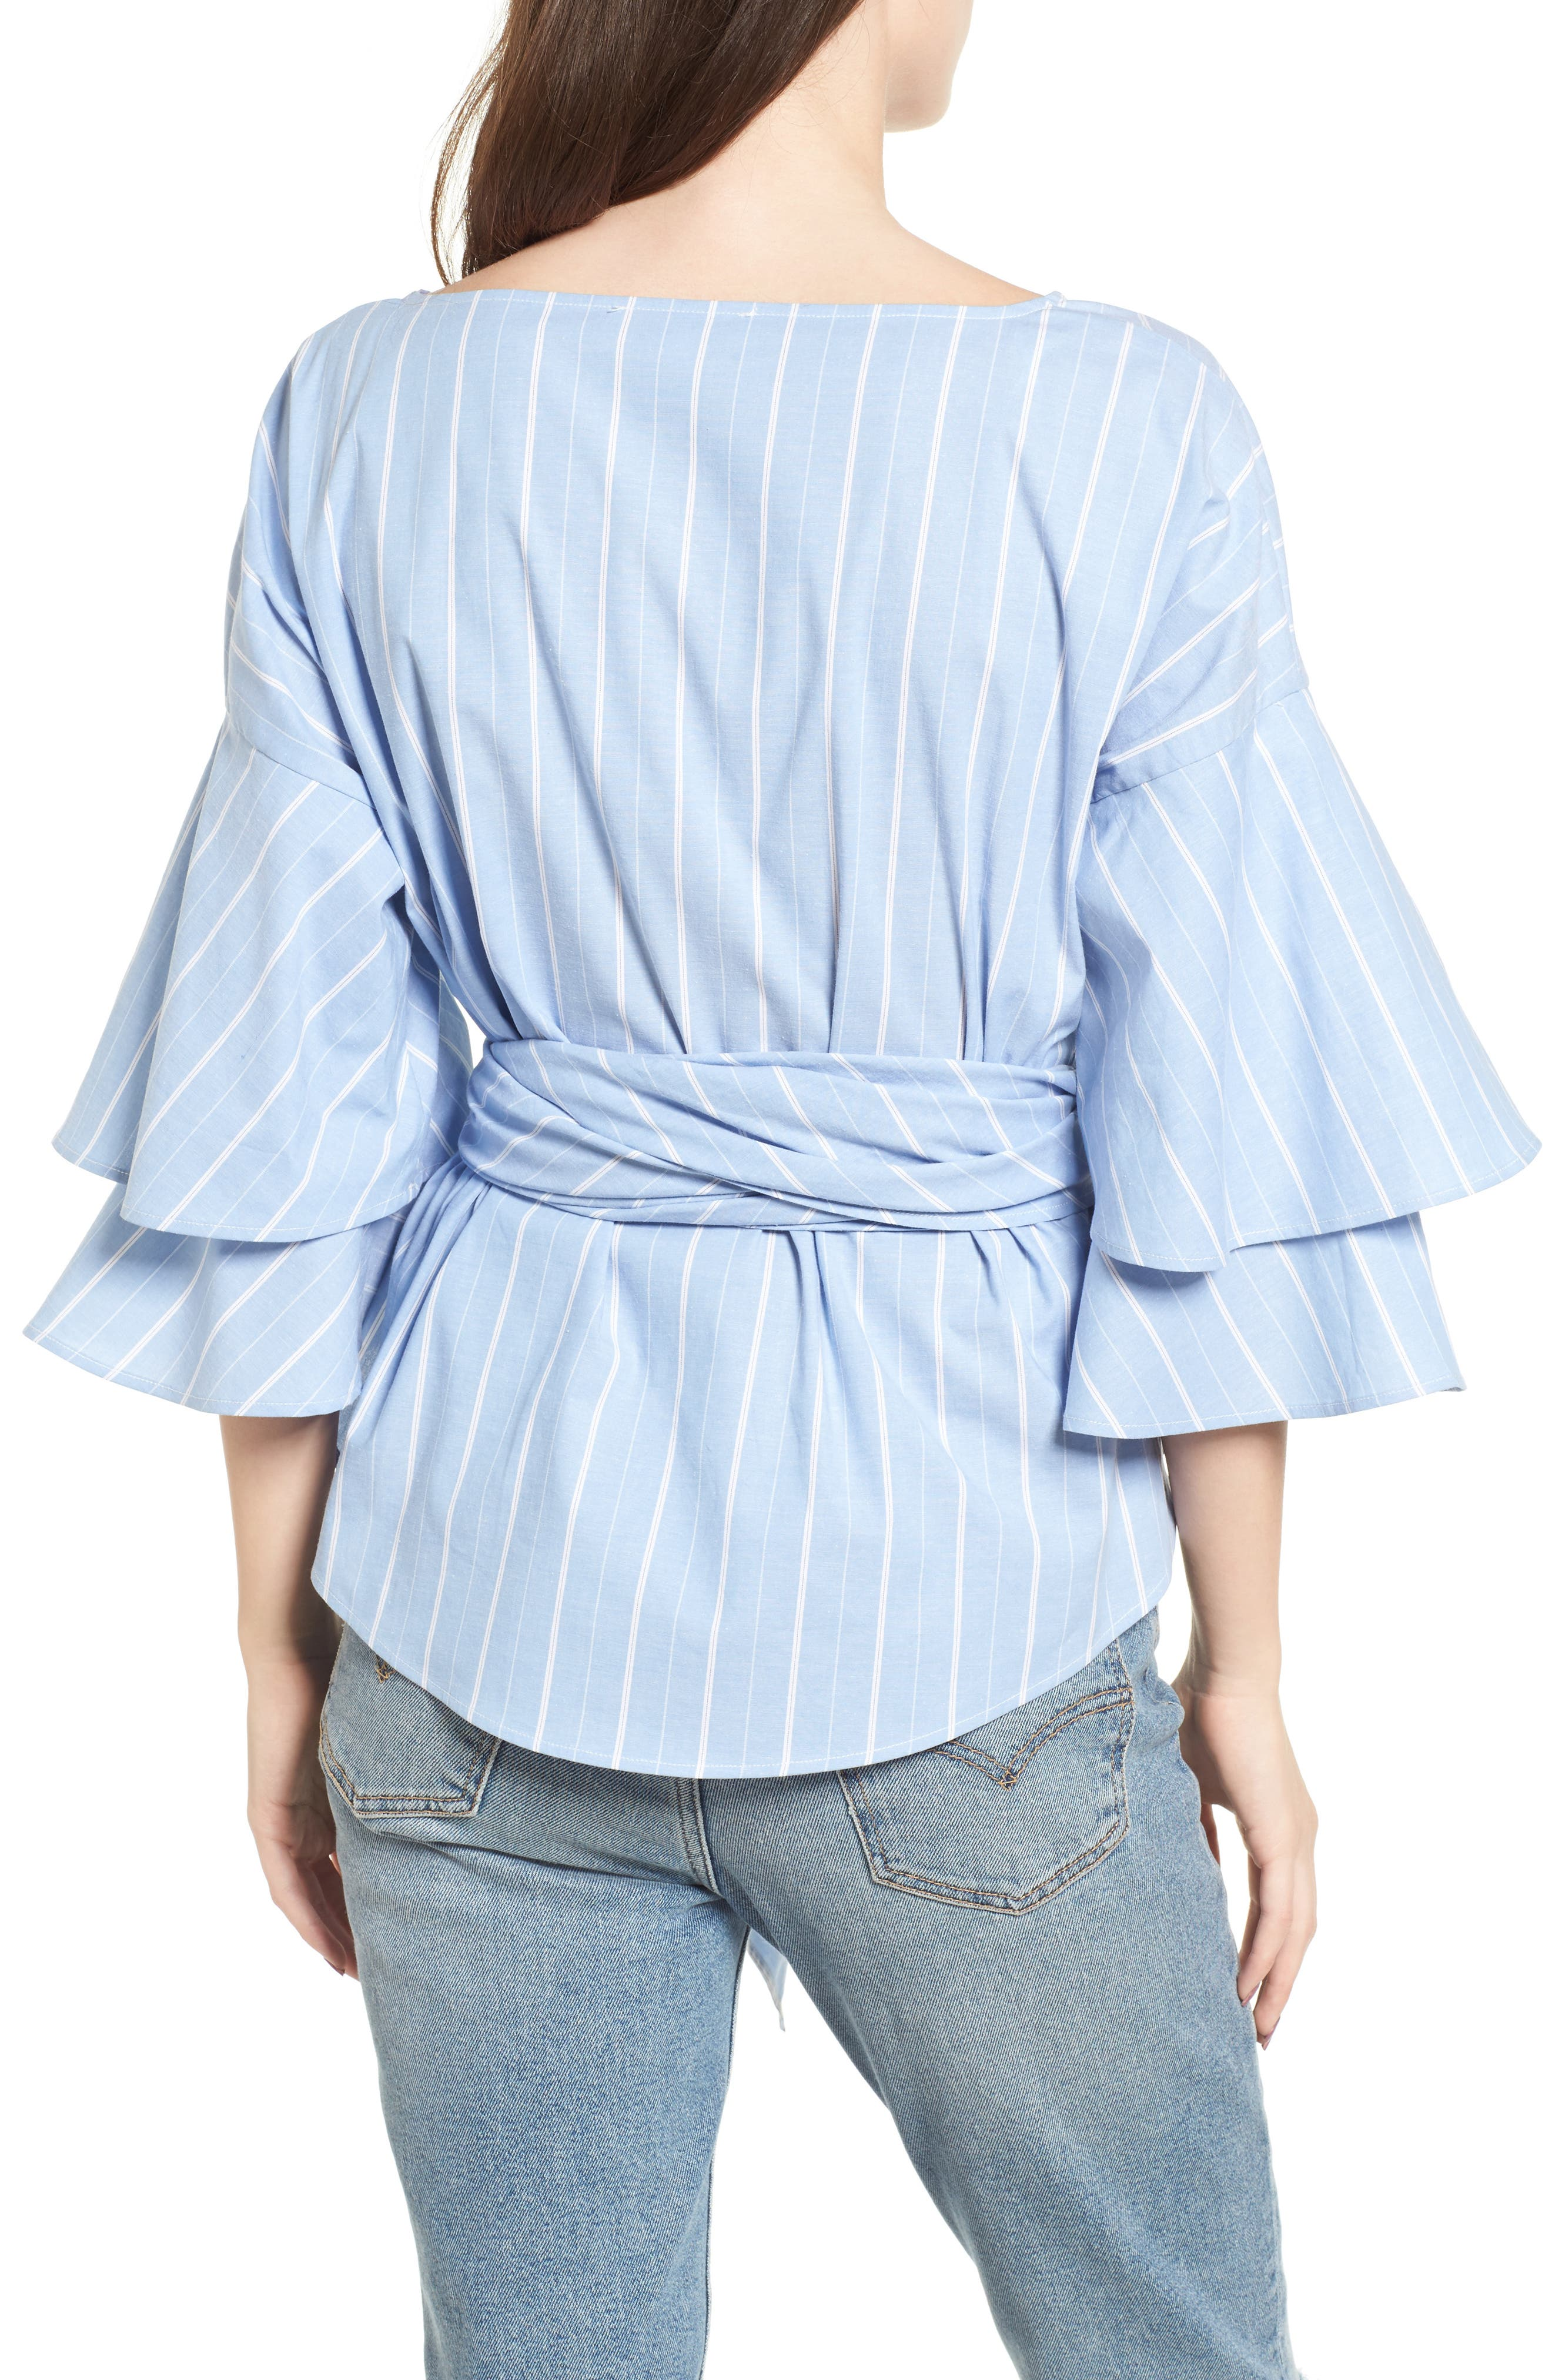 Beckett Tiered Bell Sleeve Top,                             Alternate thumbnail 11, color,